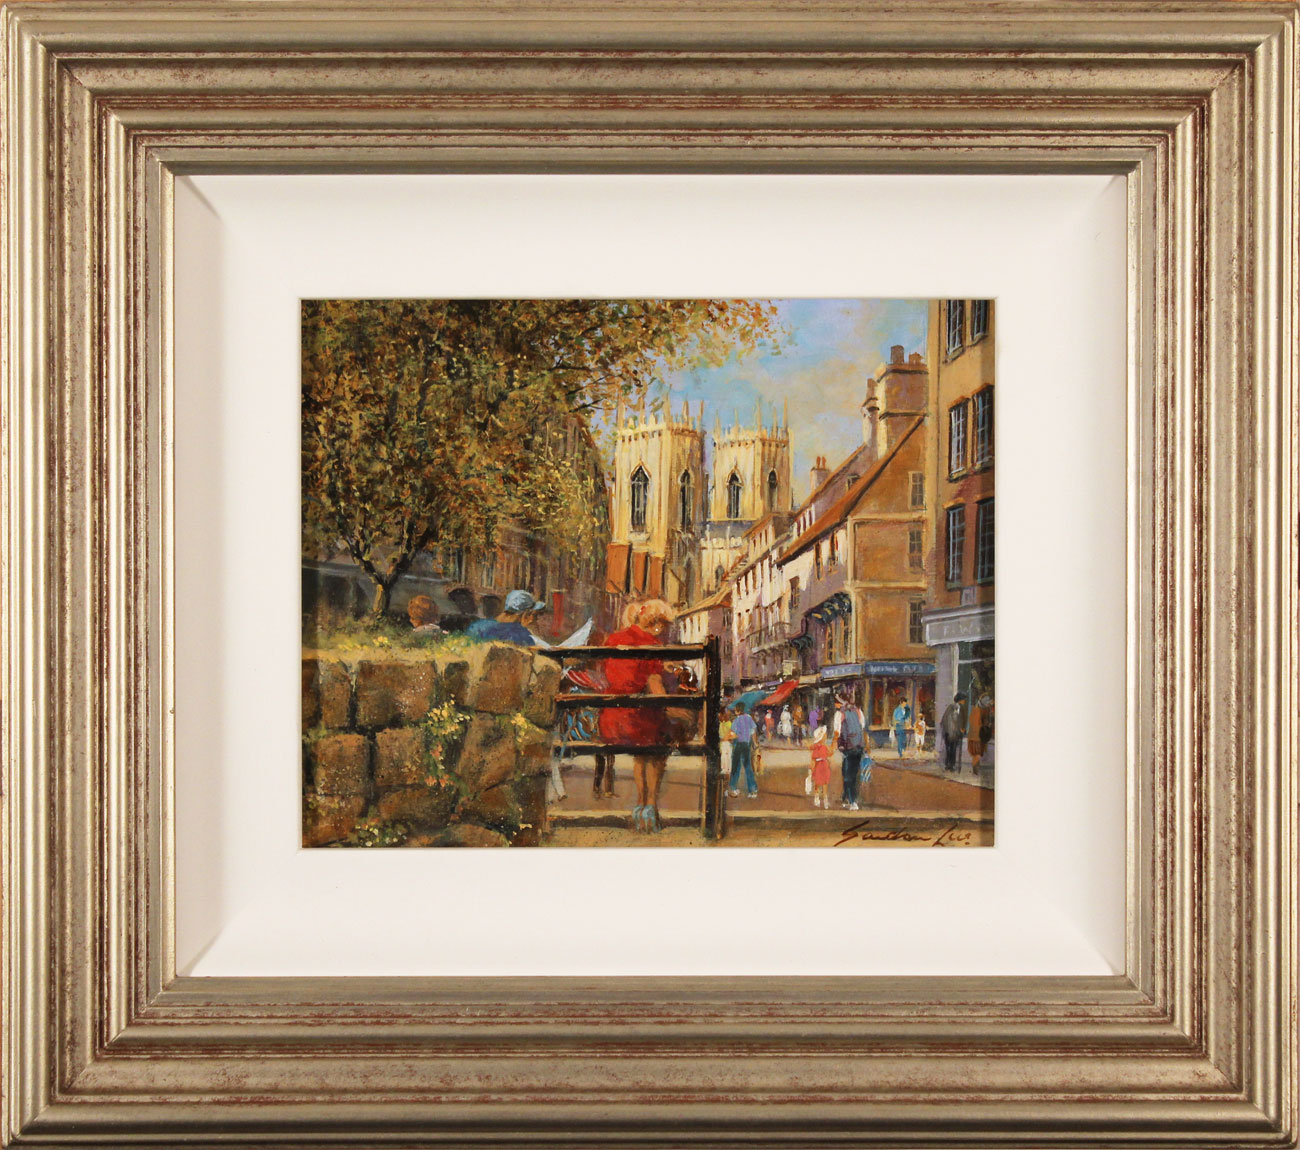 Gordon Lees, Original oil painting on panel, King's Square, York. Click to enlarge